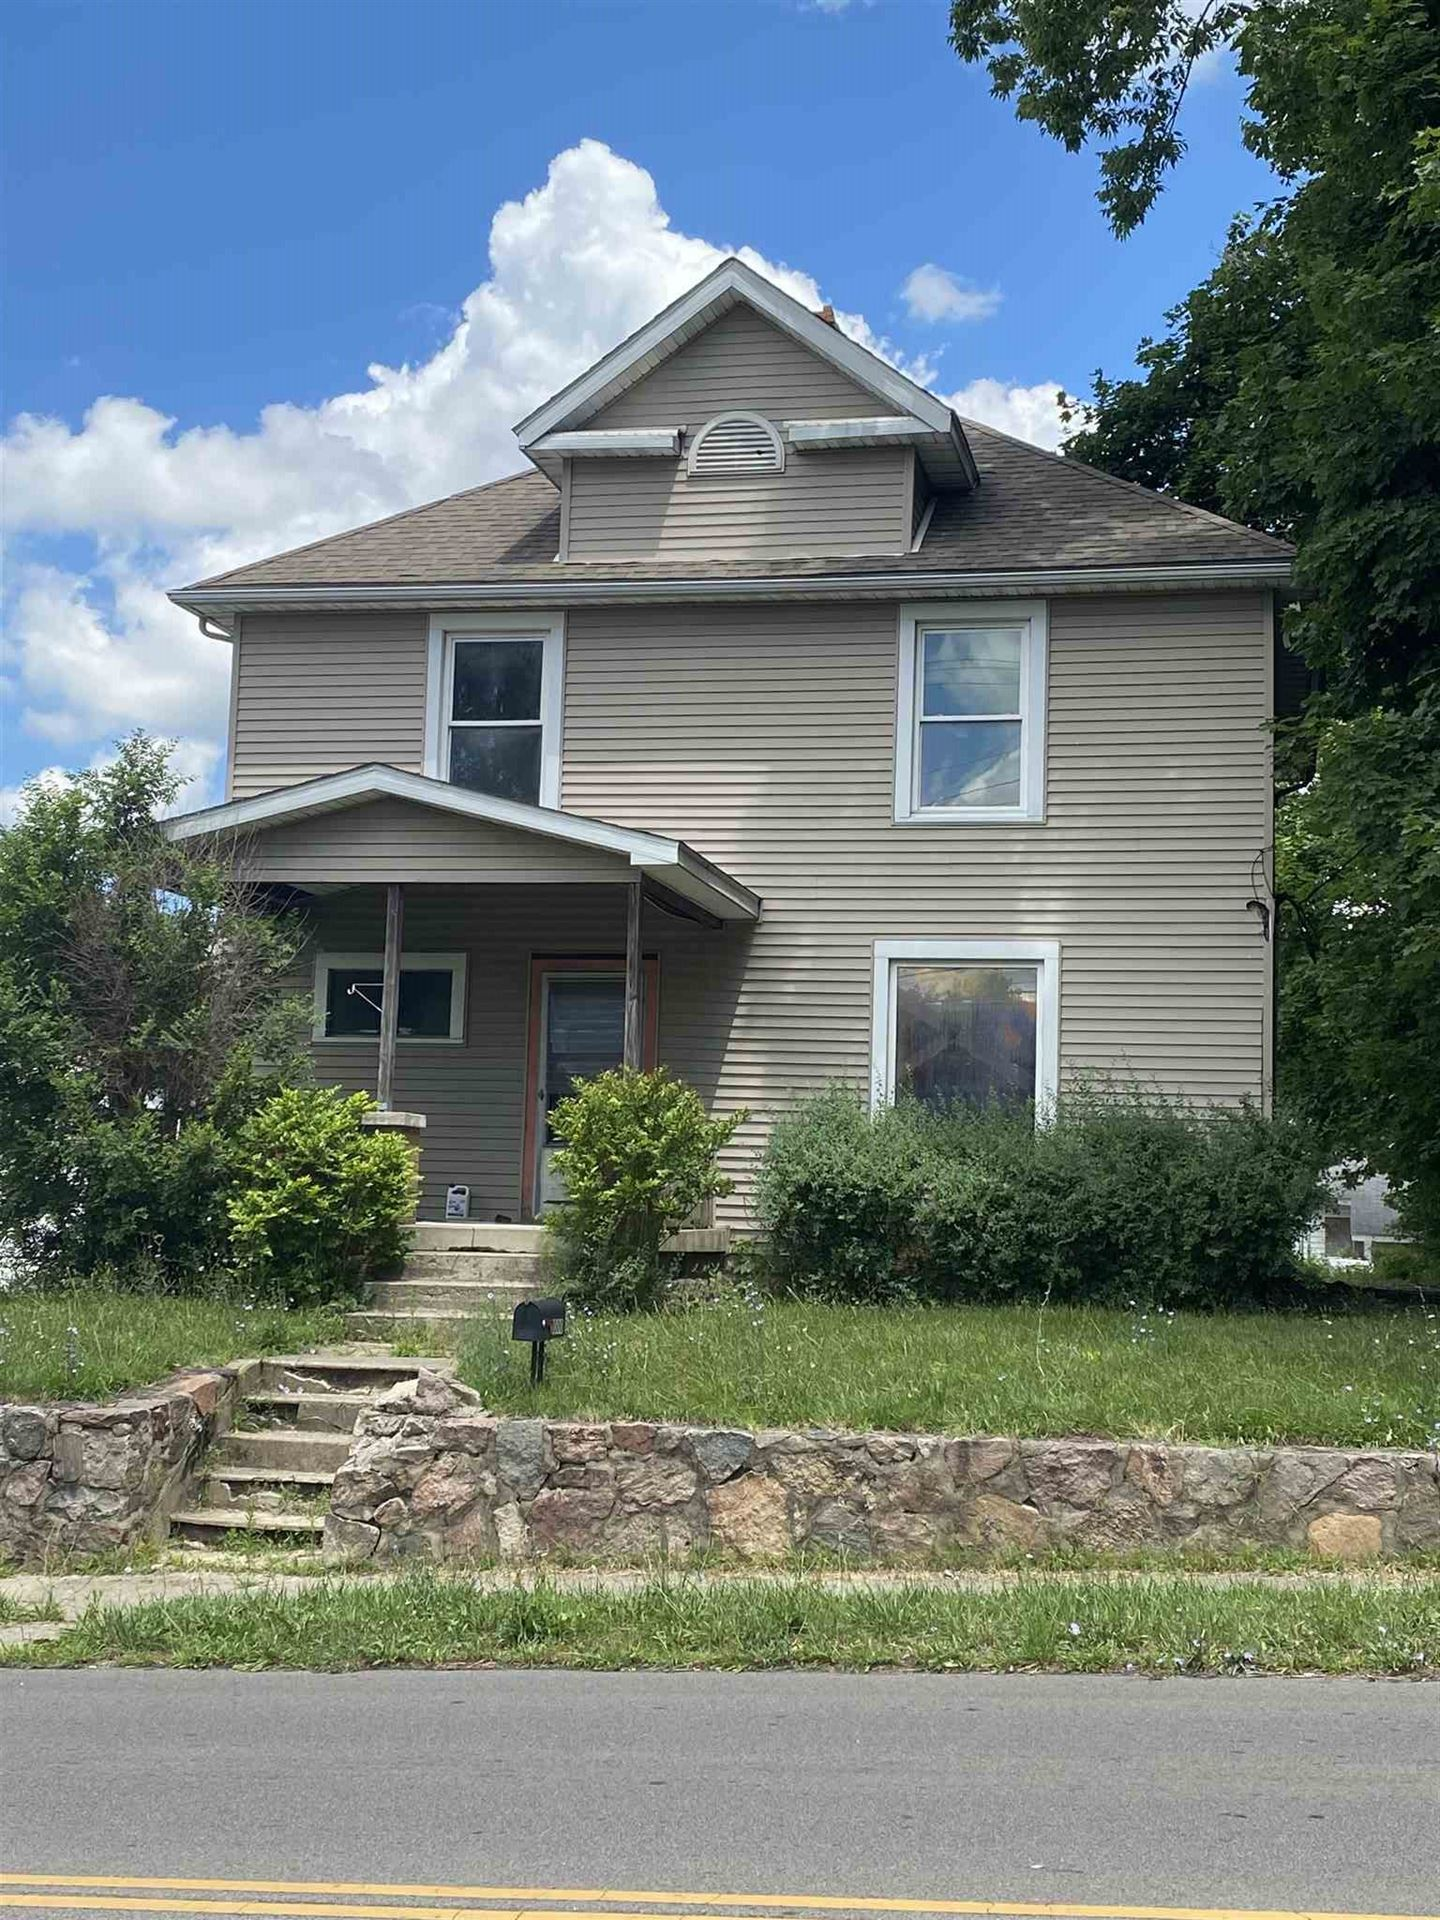 Photo of 1000 INDIANA Avenue, New Castle, IN 47362 (MLS # 202026878)